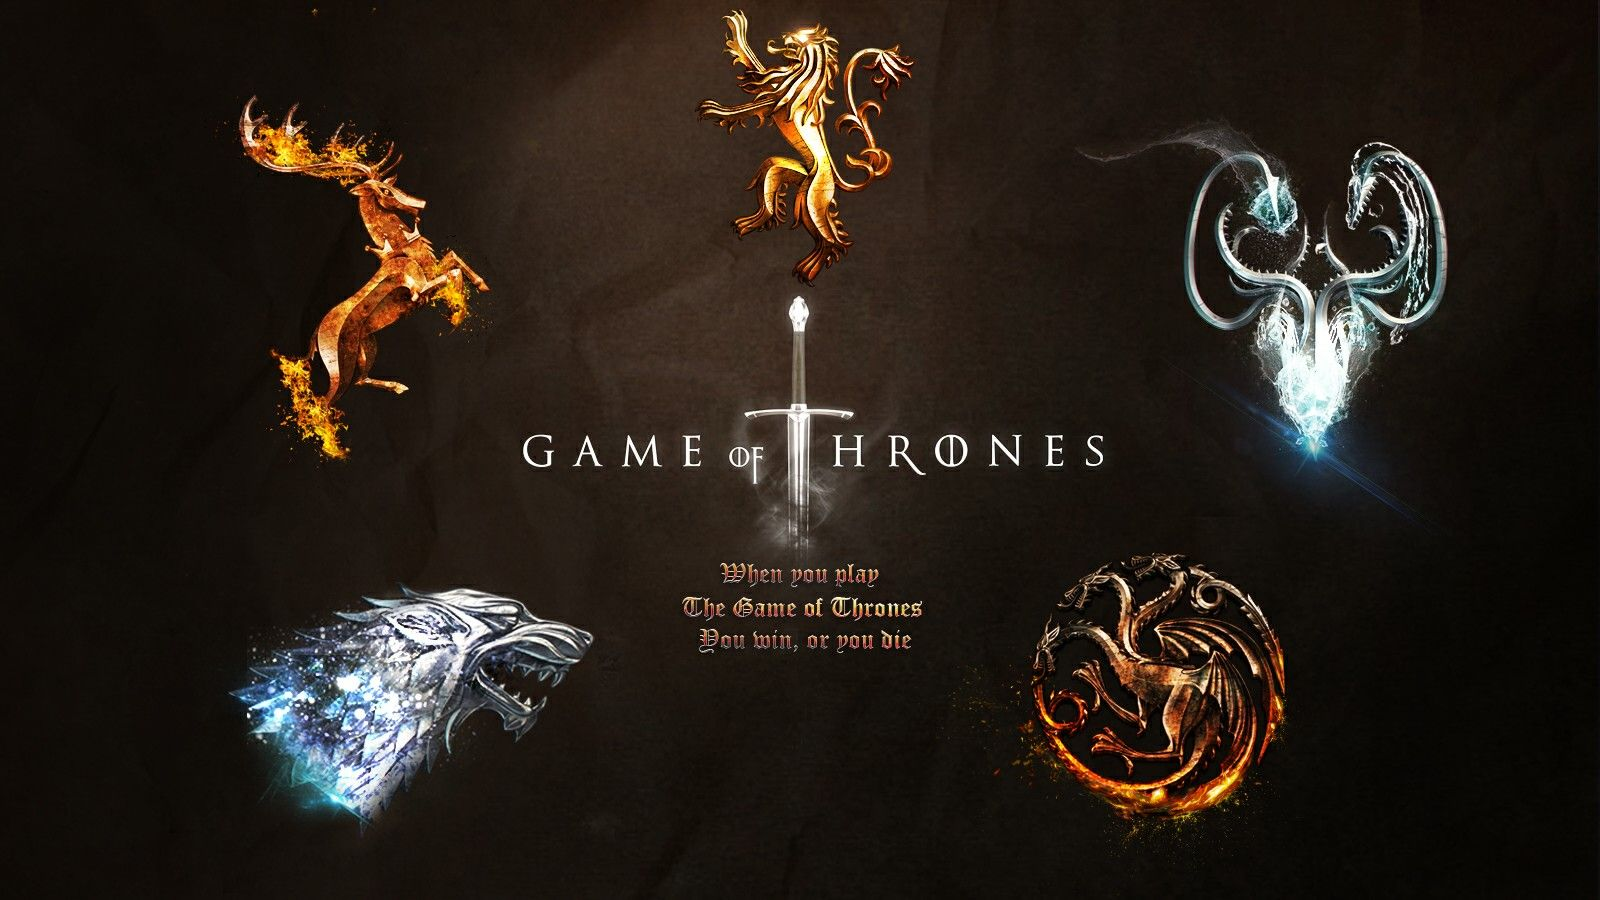 Games Of Thrones Wallpaper Game Of Thrones Poster Game Of